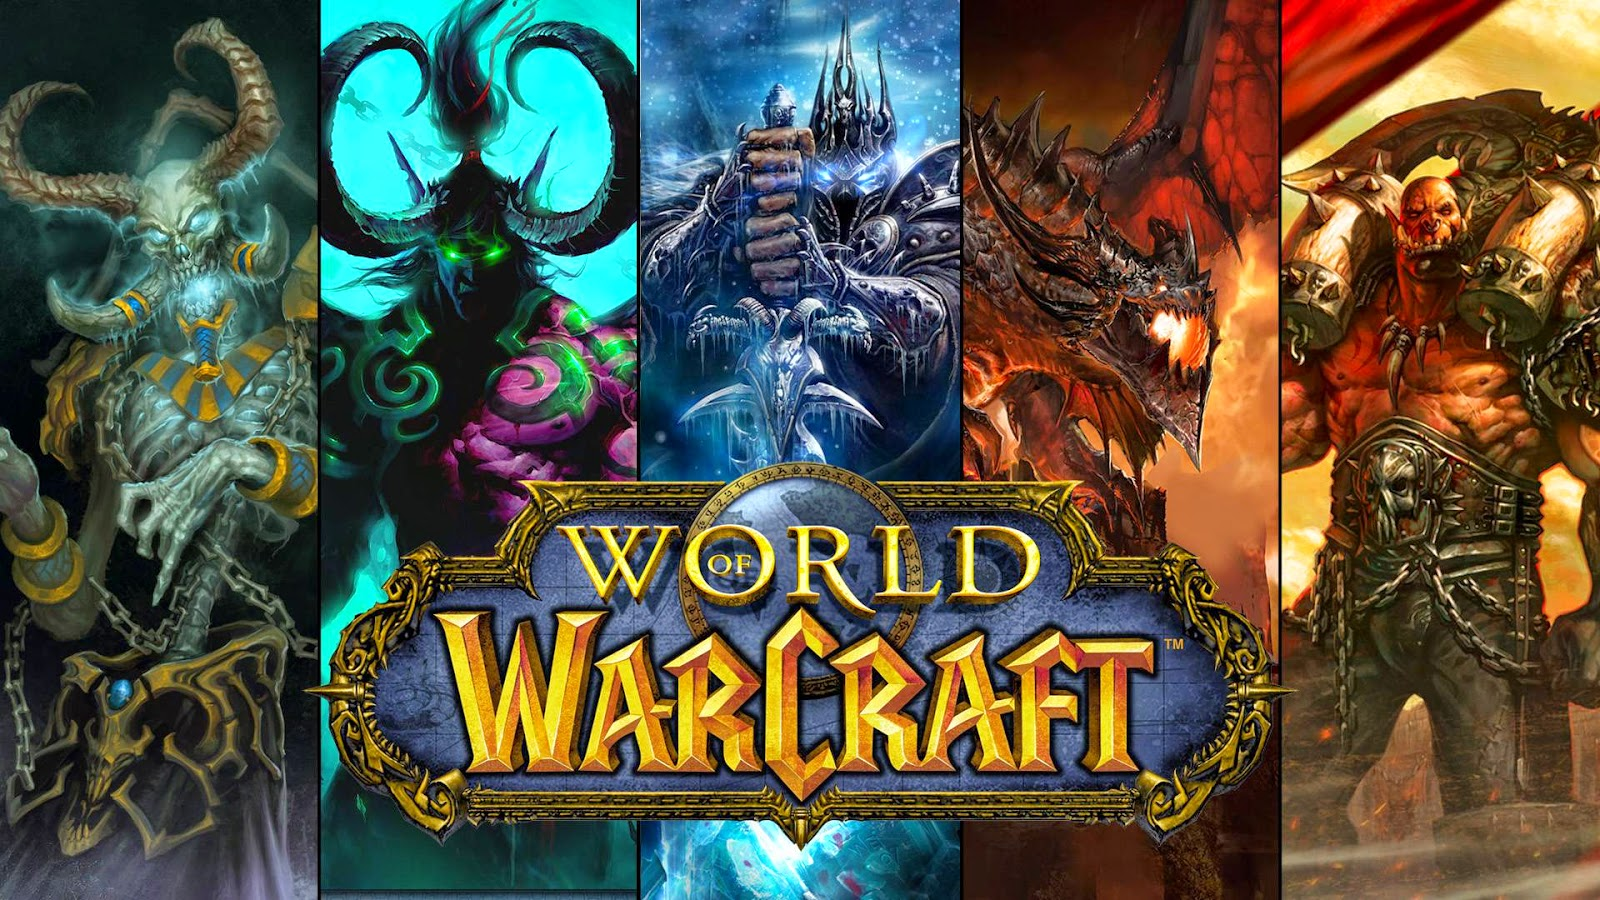 World of Warcraft Patch 6.0.2, WOW, world of warcraft